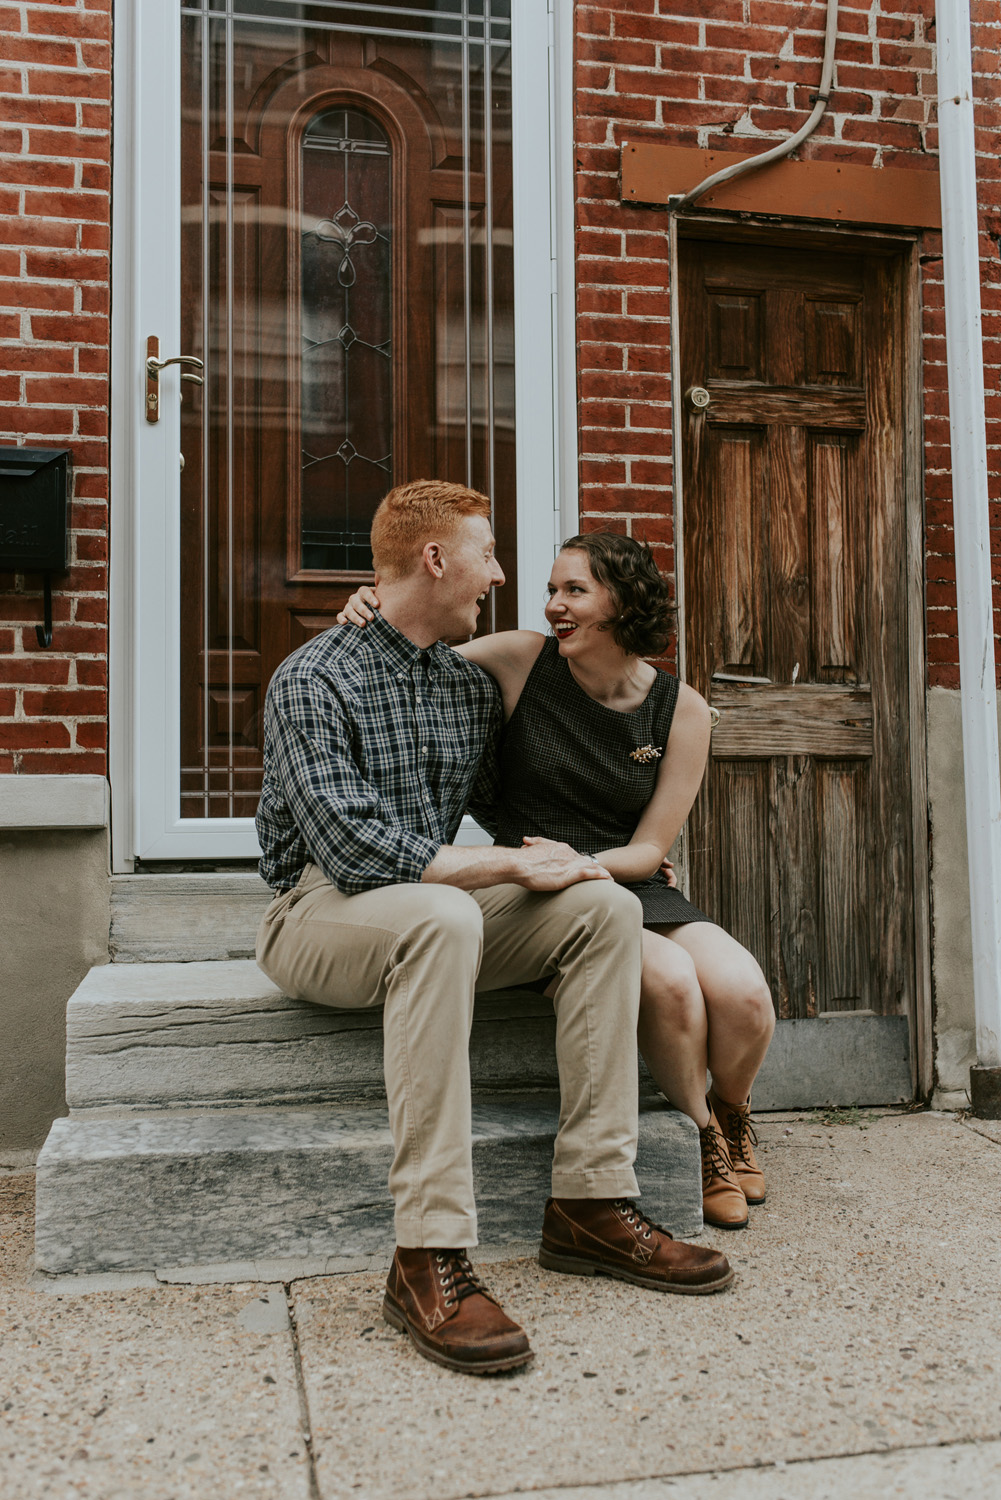 front_street_engagement_south_philadelphia_portrait_photographer_fishtown_pennsylvania_pa_kylewillisphoto_wedding_kyle_willis_photography